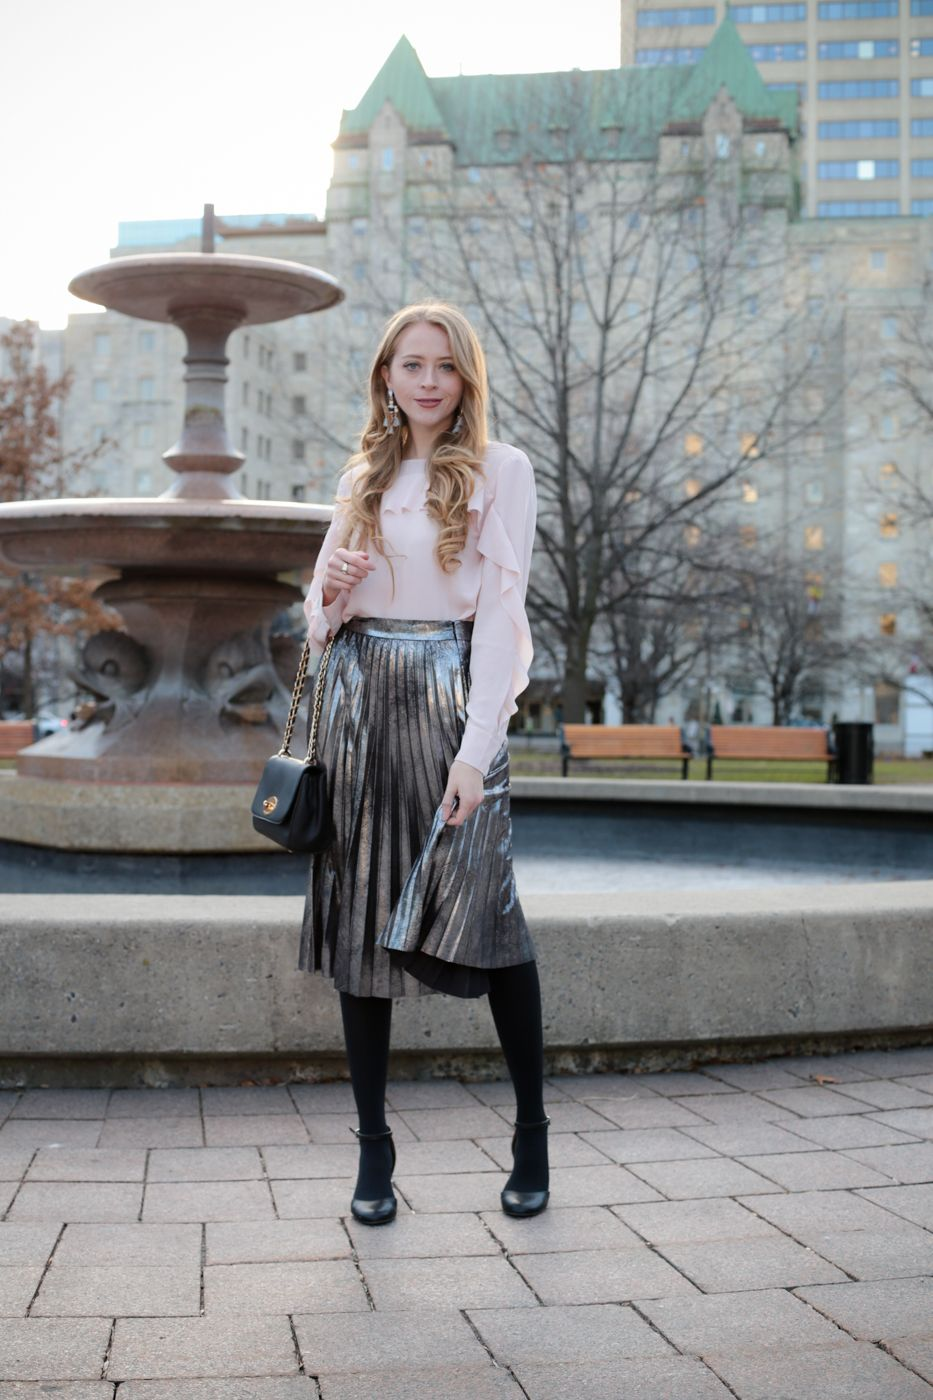 203054f491 One trend I can't get enough of is a metallic pleated skirt! I love the  modern twist on a wardrobe staple, and paired it with a pink ruffled blouse.